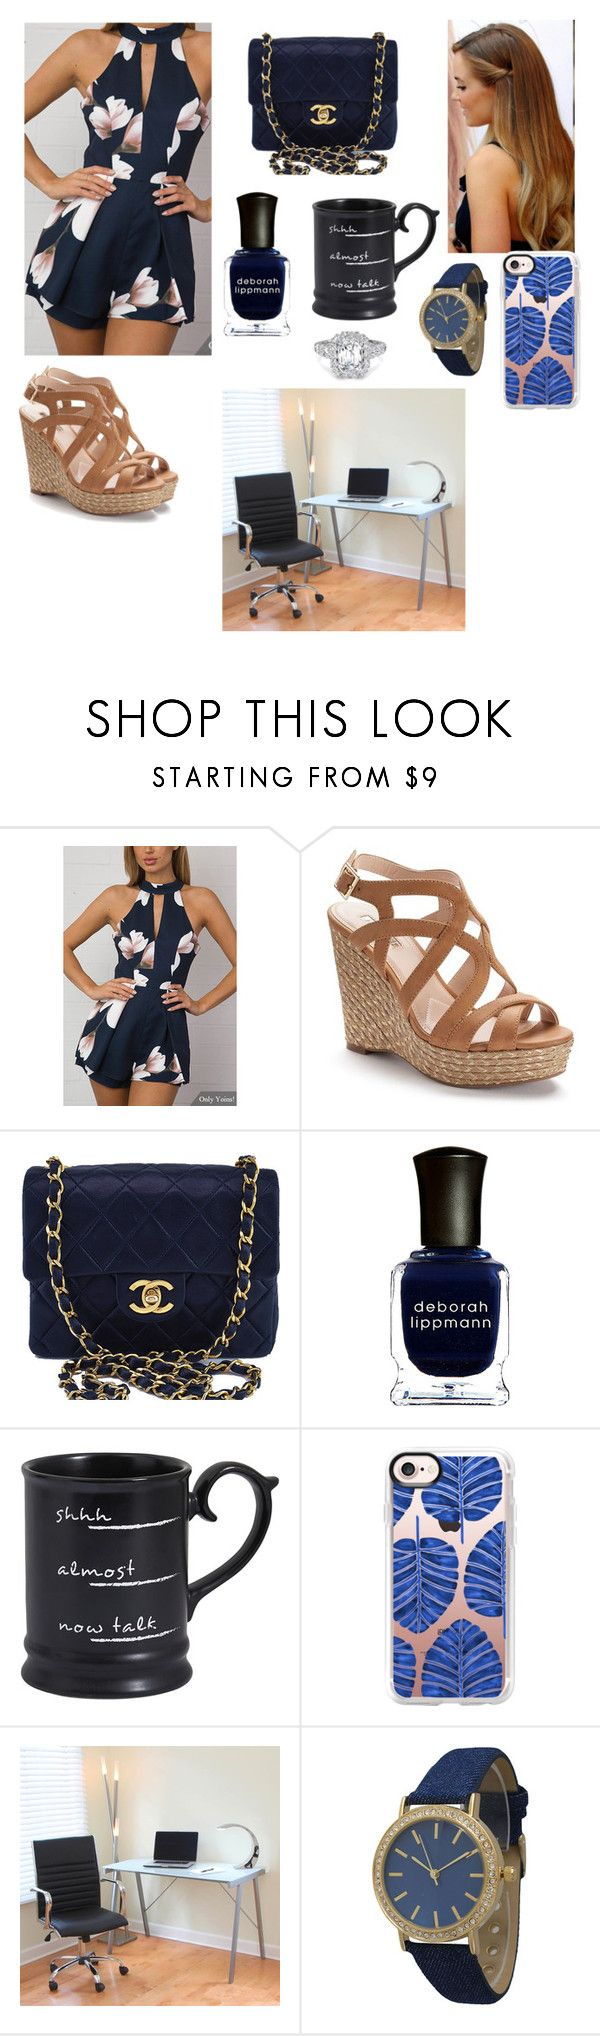 """""""First day of work 🙌🏽"""" by blessandbeloved03 ❤ liked on Polyvore featuring Jennifer Lopez, Chanel, Deborah Lippmann, Pier 1 Imports, Casetify, LumiSource and Olivia Pratt"""